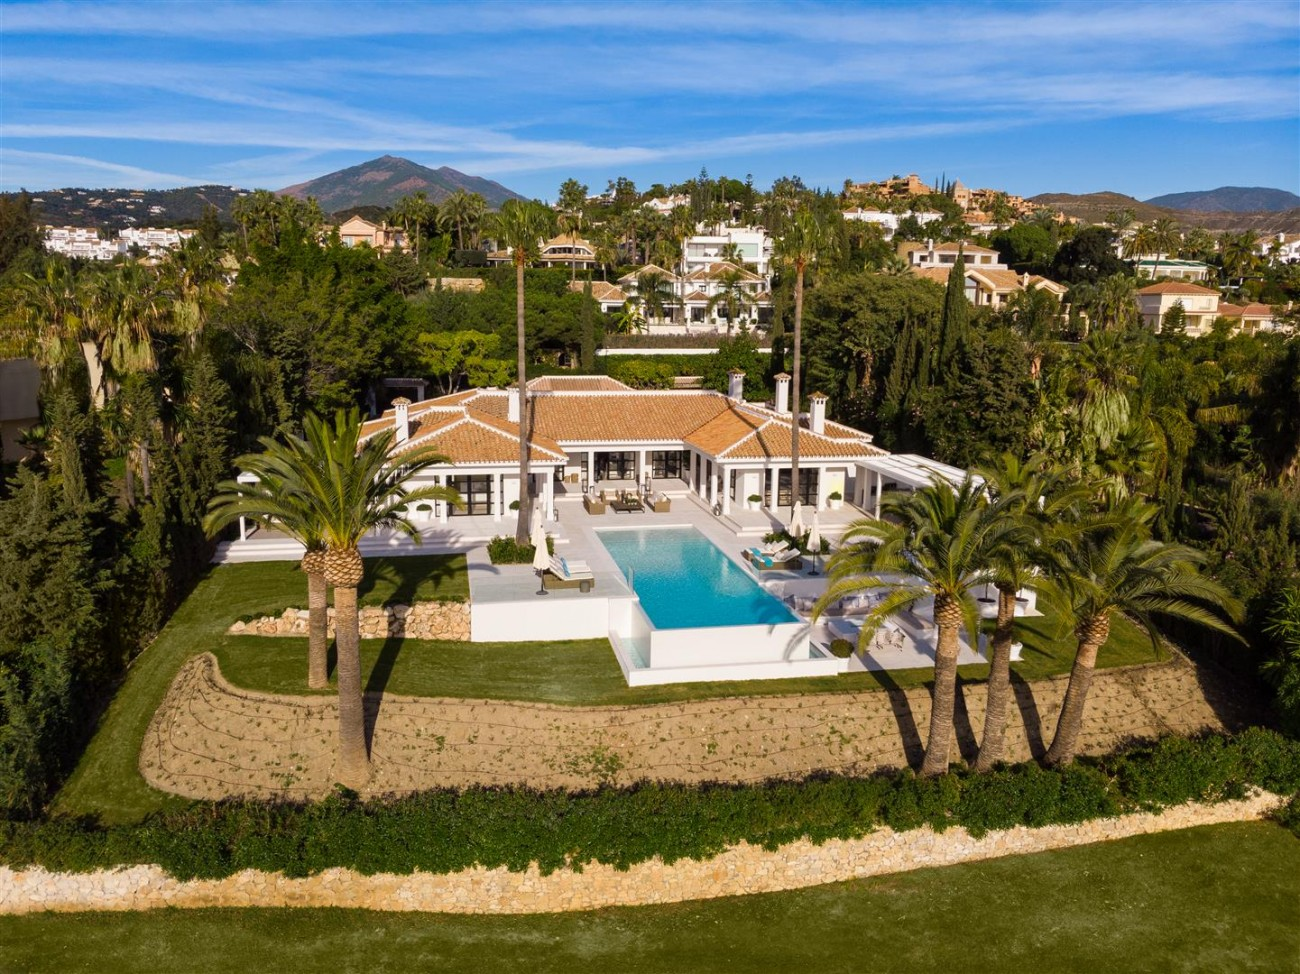 Frontline Golf Luxury Villa for sale Nueva Andalucia Marbella Spain (43) (Large)